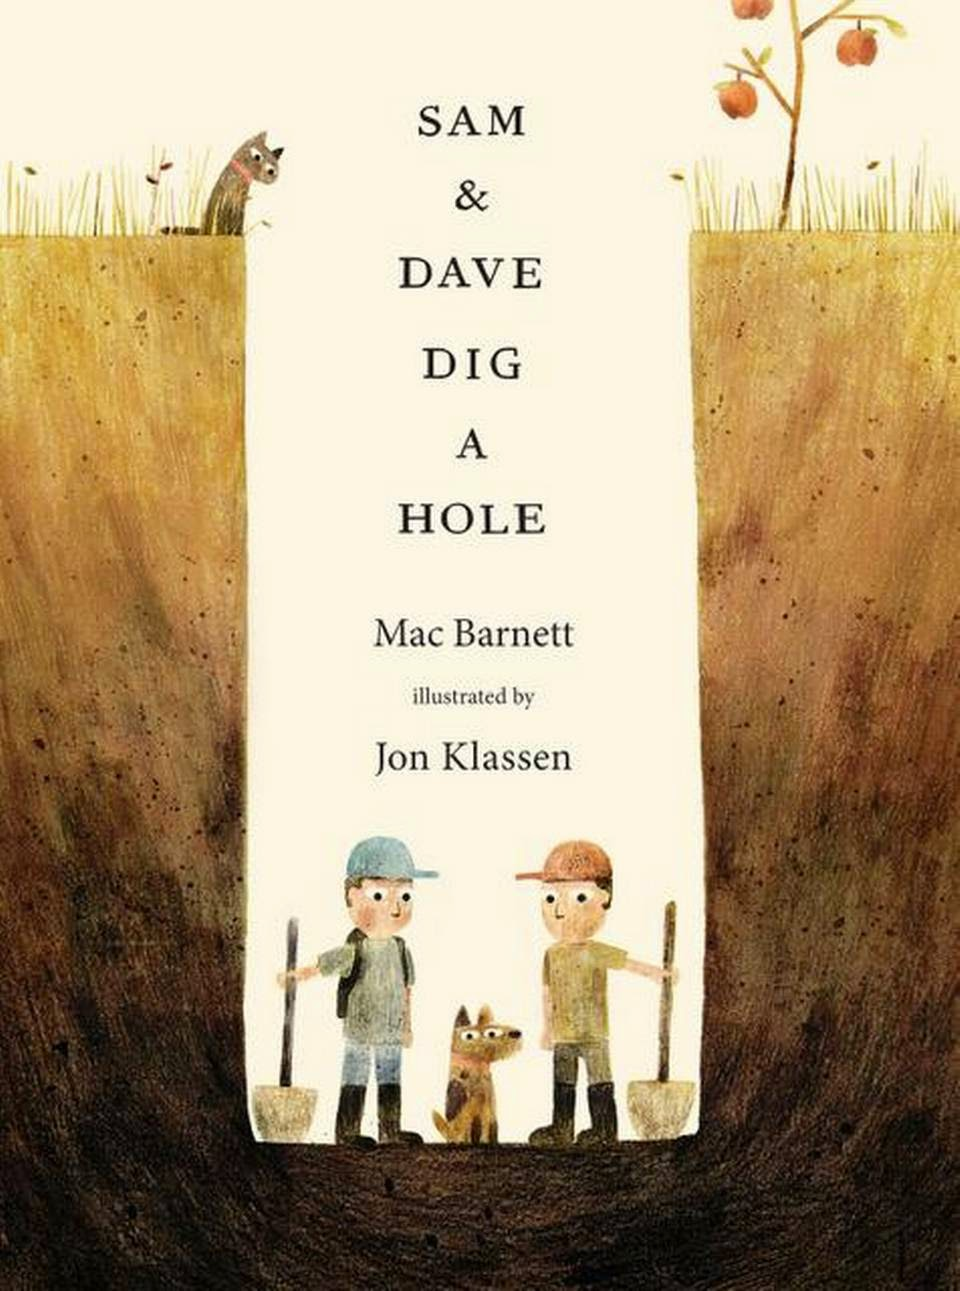 Book cover: Sam & Dave Dig a Hole, by Mac Barnett and illustrated by Jon Klassen. Illustration depicts two boys, each holding a shovel, and a dog inside a deep hole in the ground. At ground-level, a cat peers down into the hole at them.